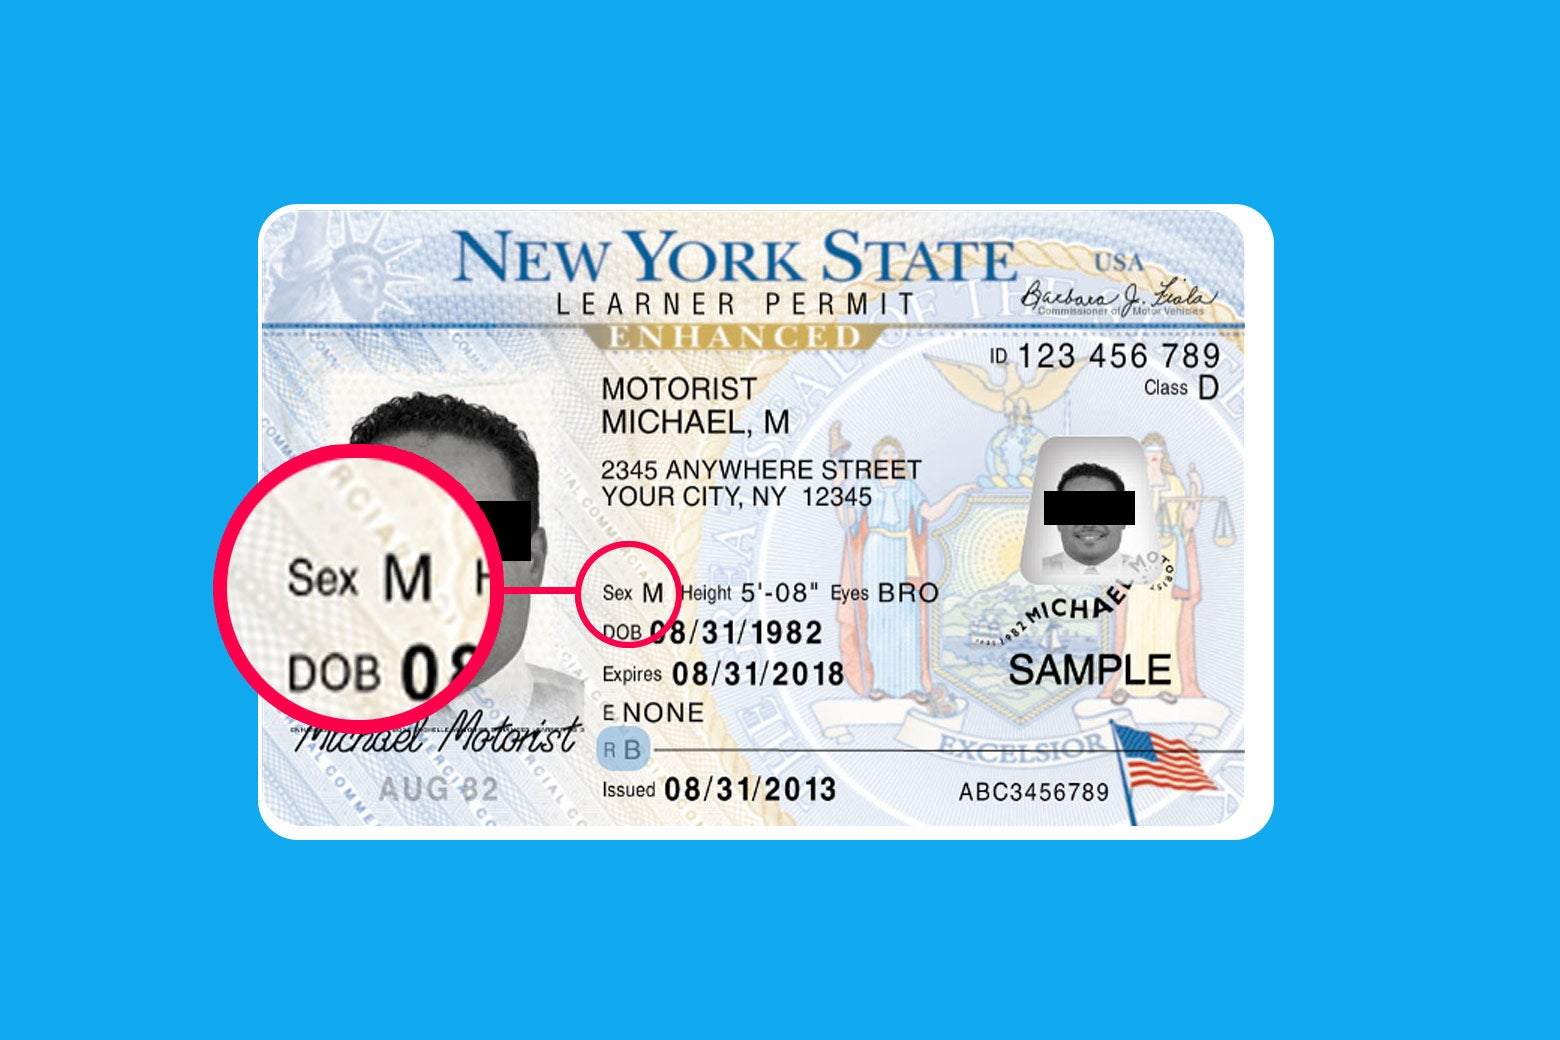 A New York driver's license with the M gender marker pointed out.